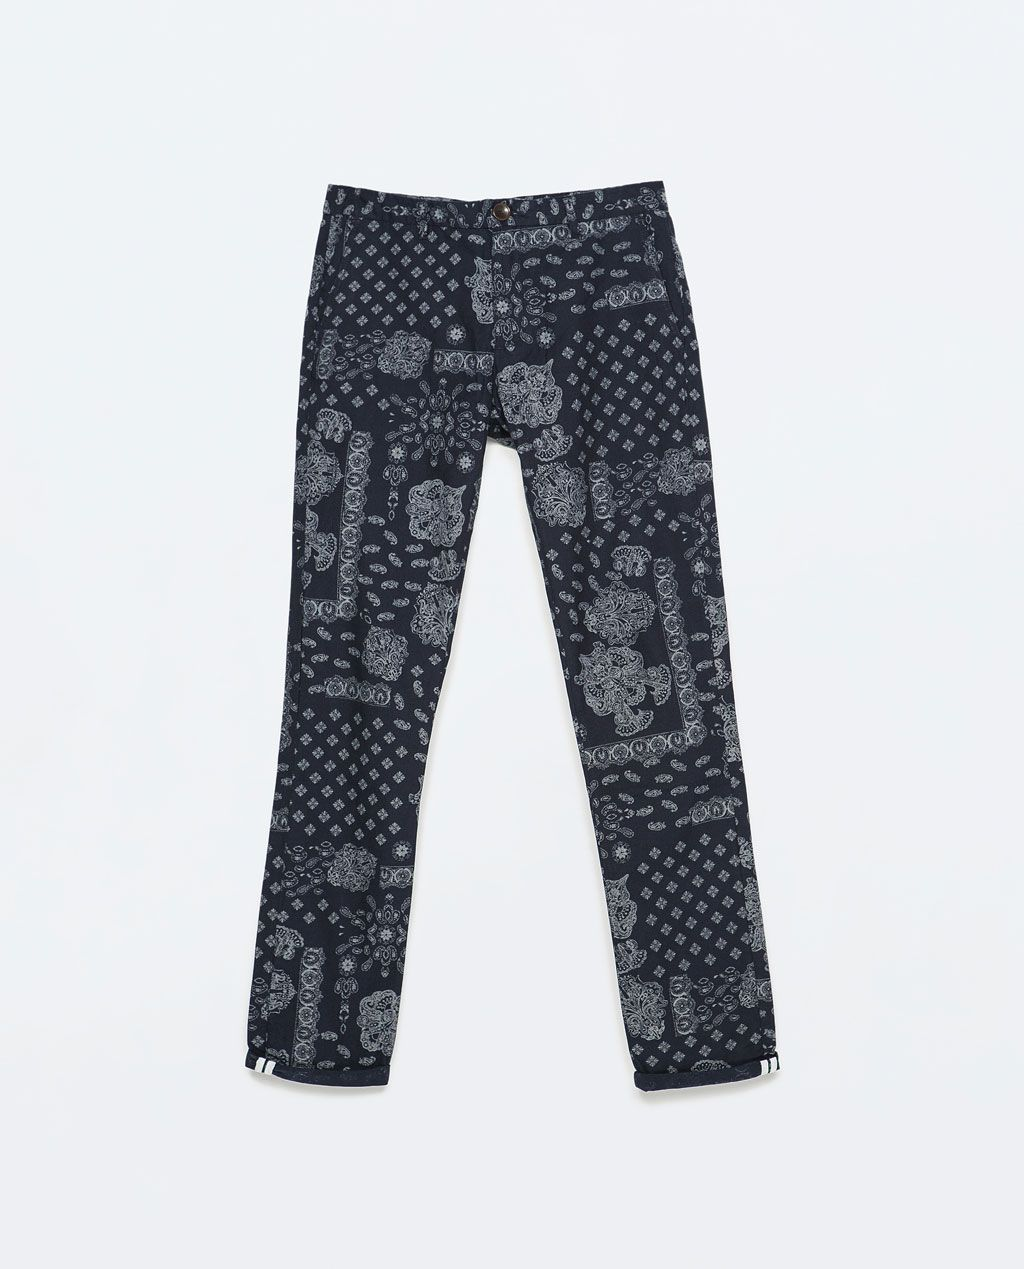 c432880c ZARA - MAN - PAISLEY PRINT TROUSERS | Ways to dress up | Printed ...